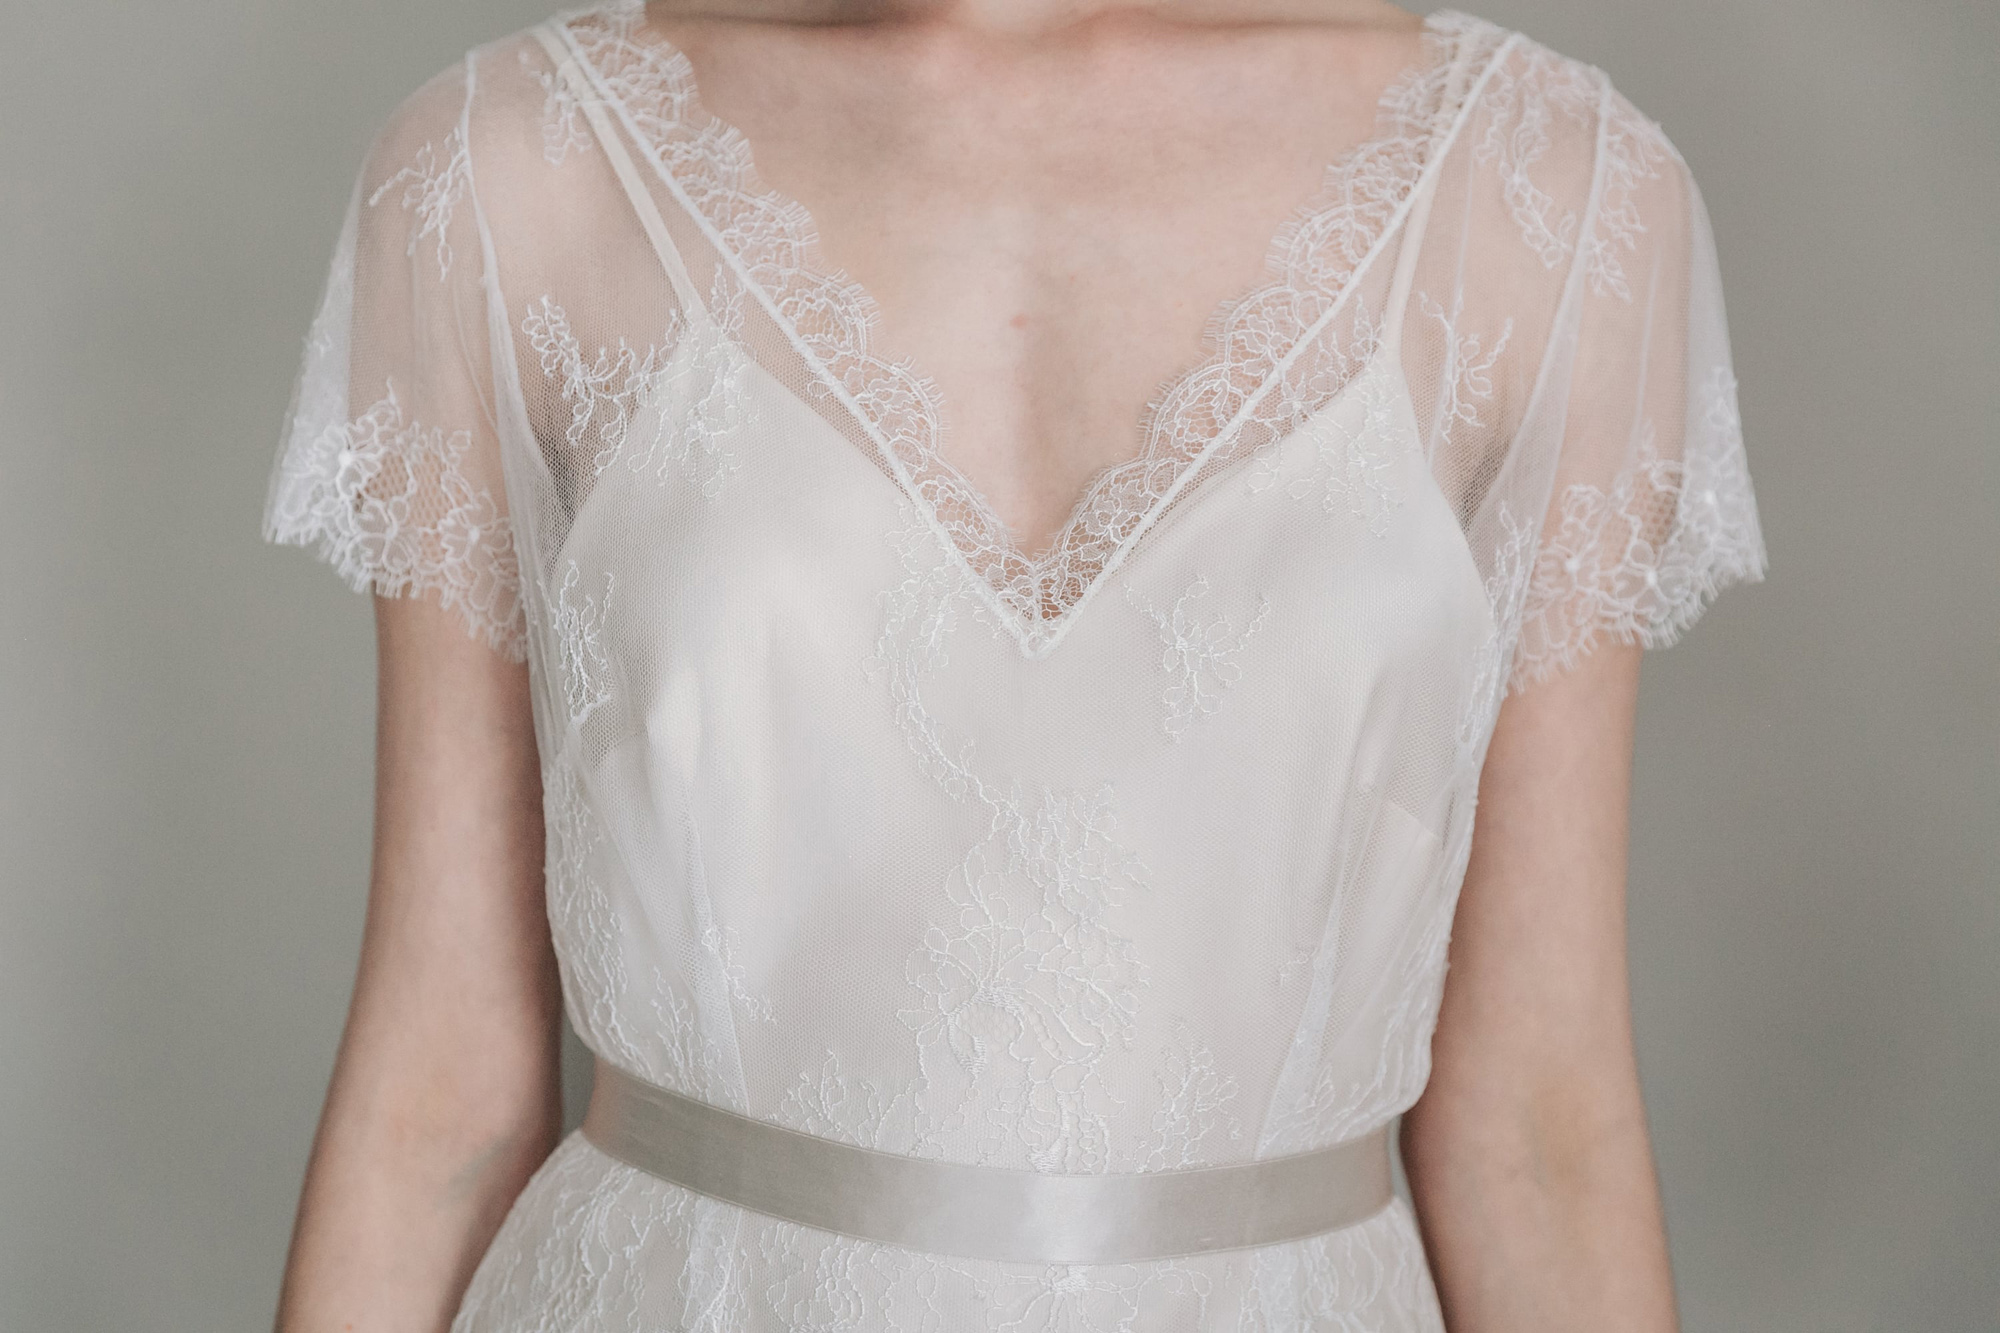 Kate-Beaumont-Sheffield-Lilac-Bridal-Separates-Lace-and-Silk-Wedding-Gown-7.jpg